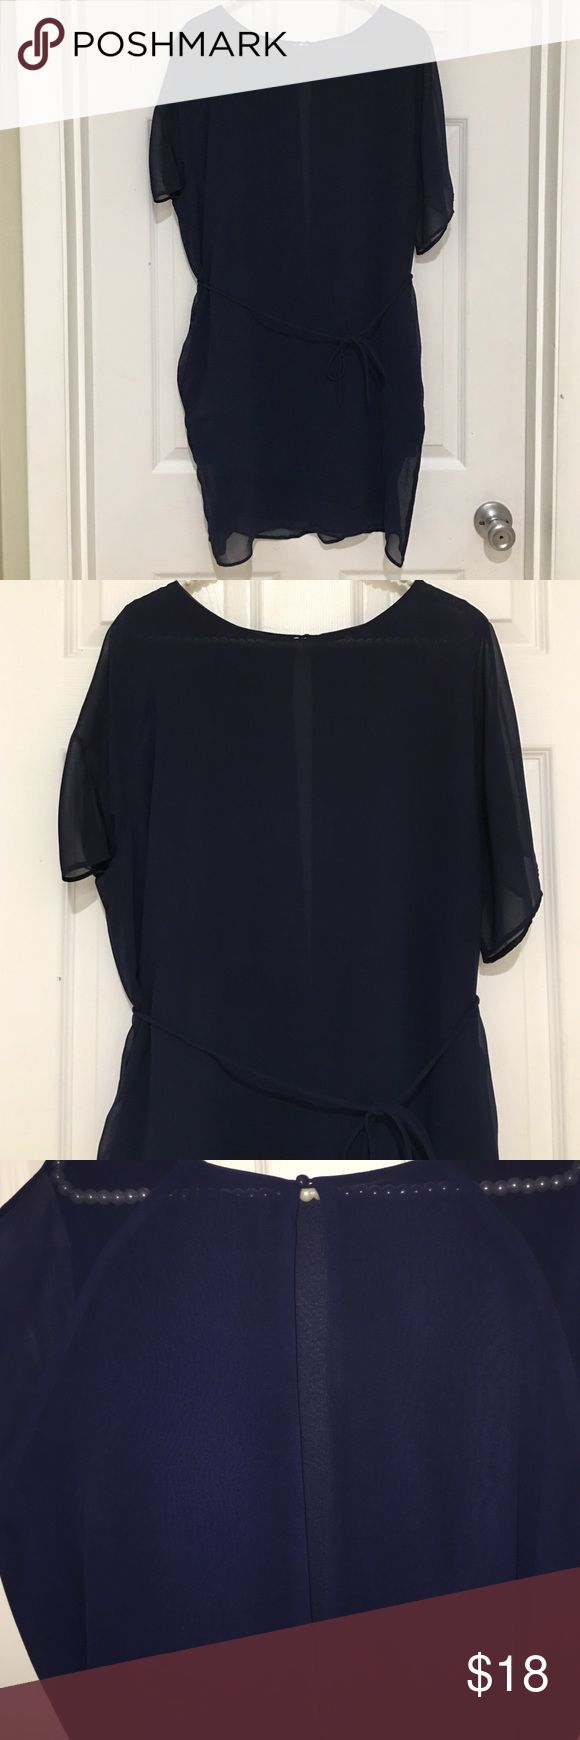 Sheer navy mini dress This cute, modern mini dress is made of sheer fabric, with lining along inside of dress body. The back has a sexy keyhole opening that stretches from the button closure at the neck to the tie waist. Dress also has pockets! EUC. Fabric content is 100% polyester. Make me an offer! Olivaceous Dresses Mini